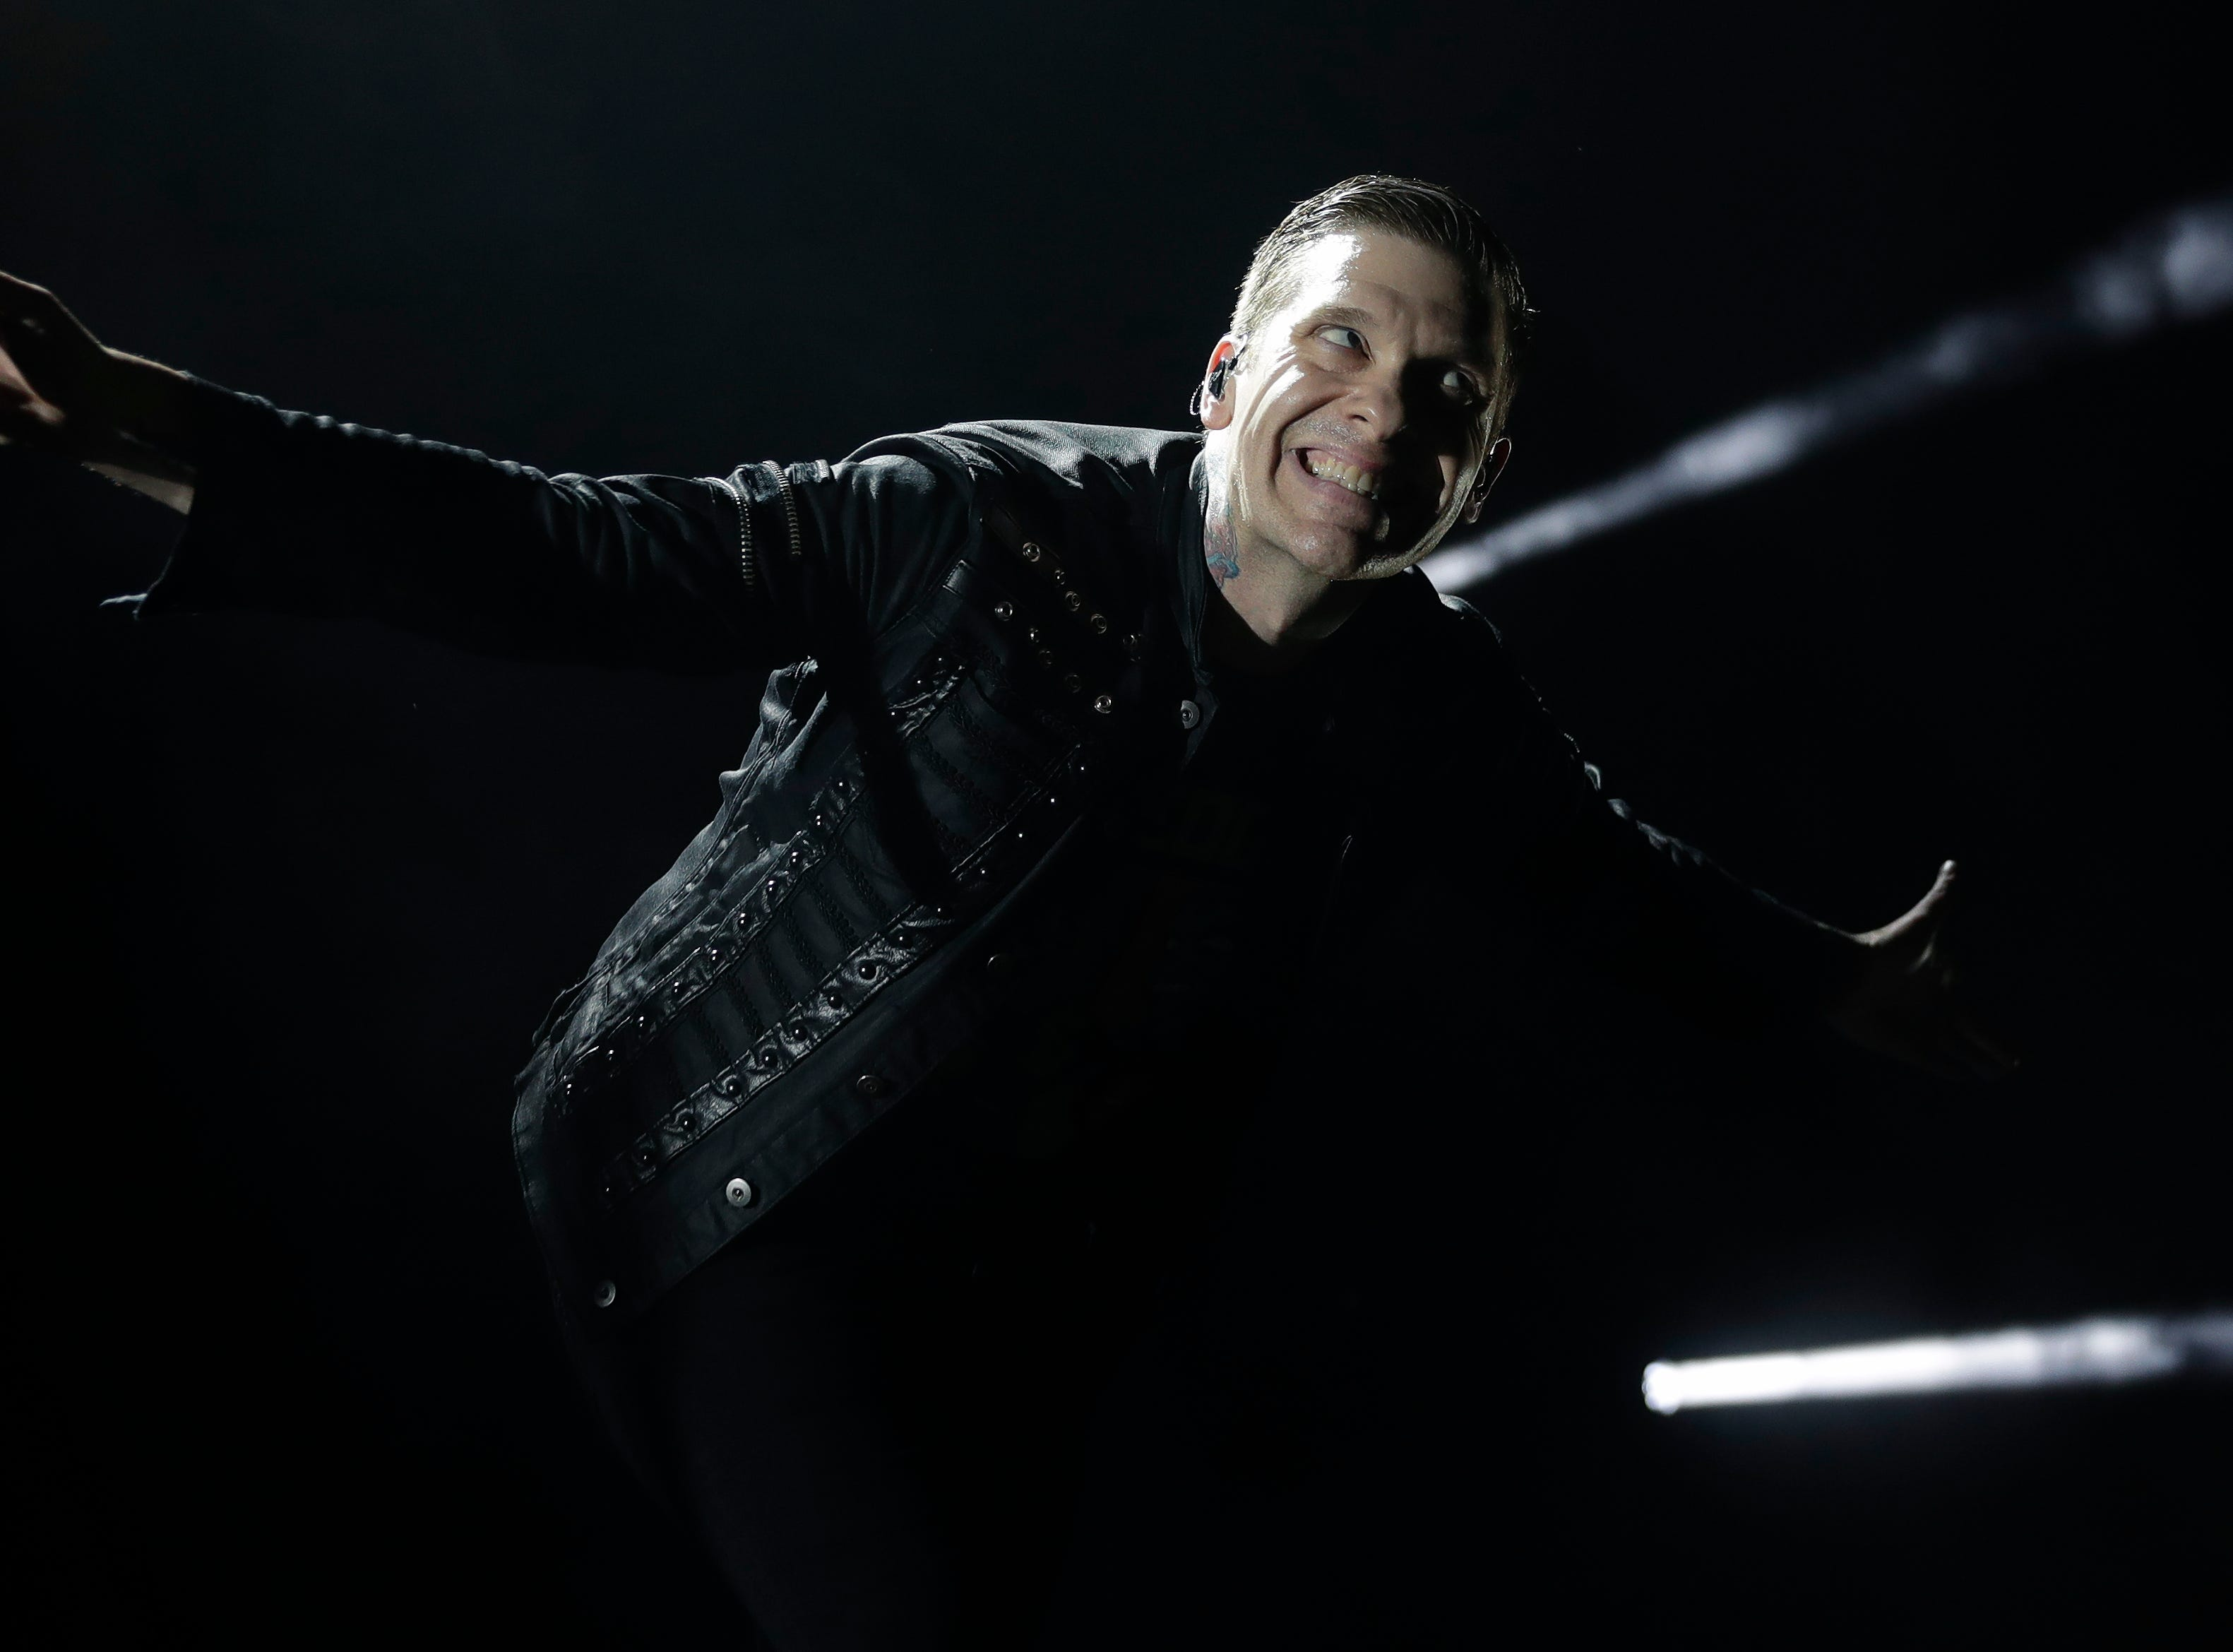 Brent Smith of Shinedown performs March 9, 2019 at the Brown County Veterans Memorial Arena in Ashwaubenon, Wis.